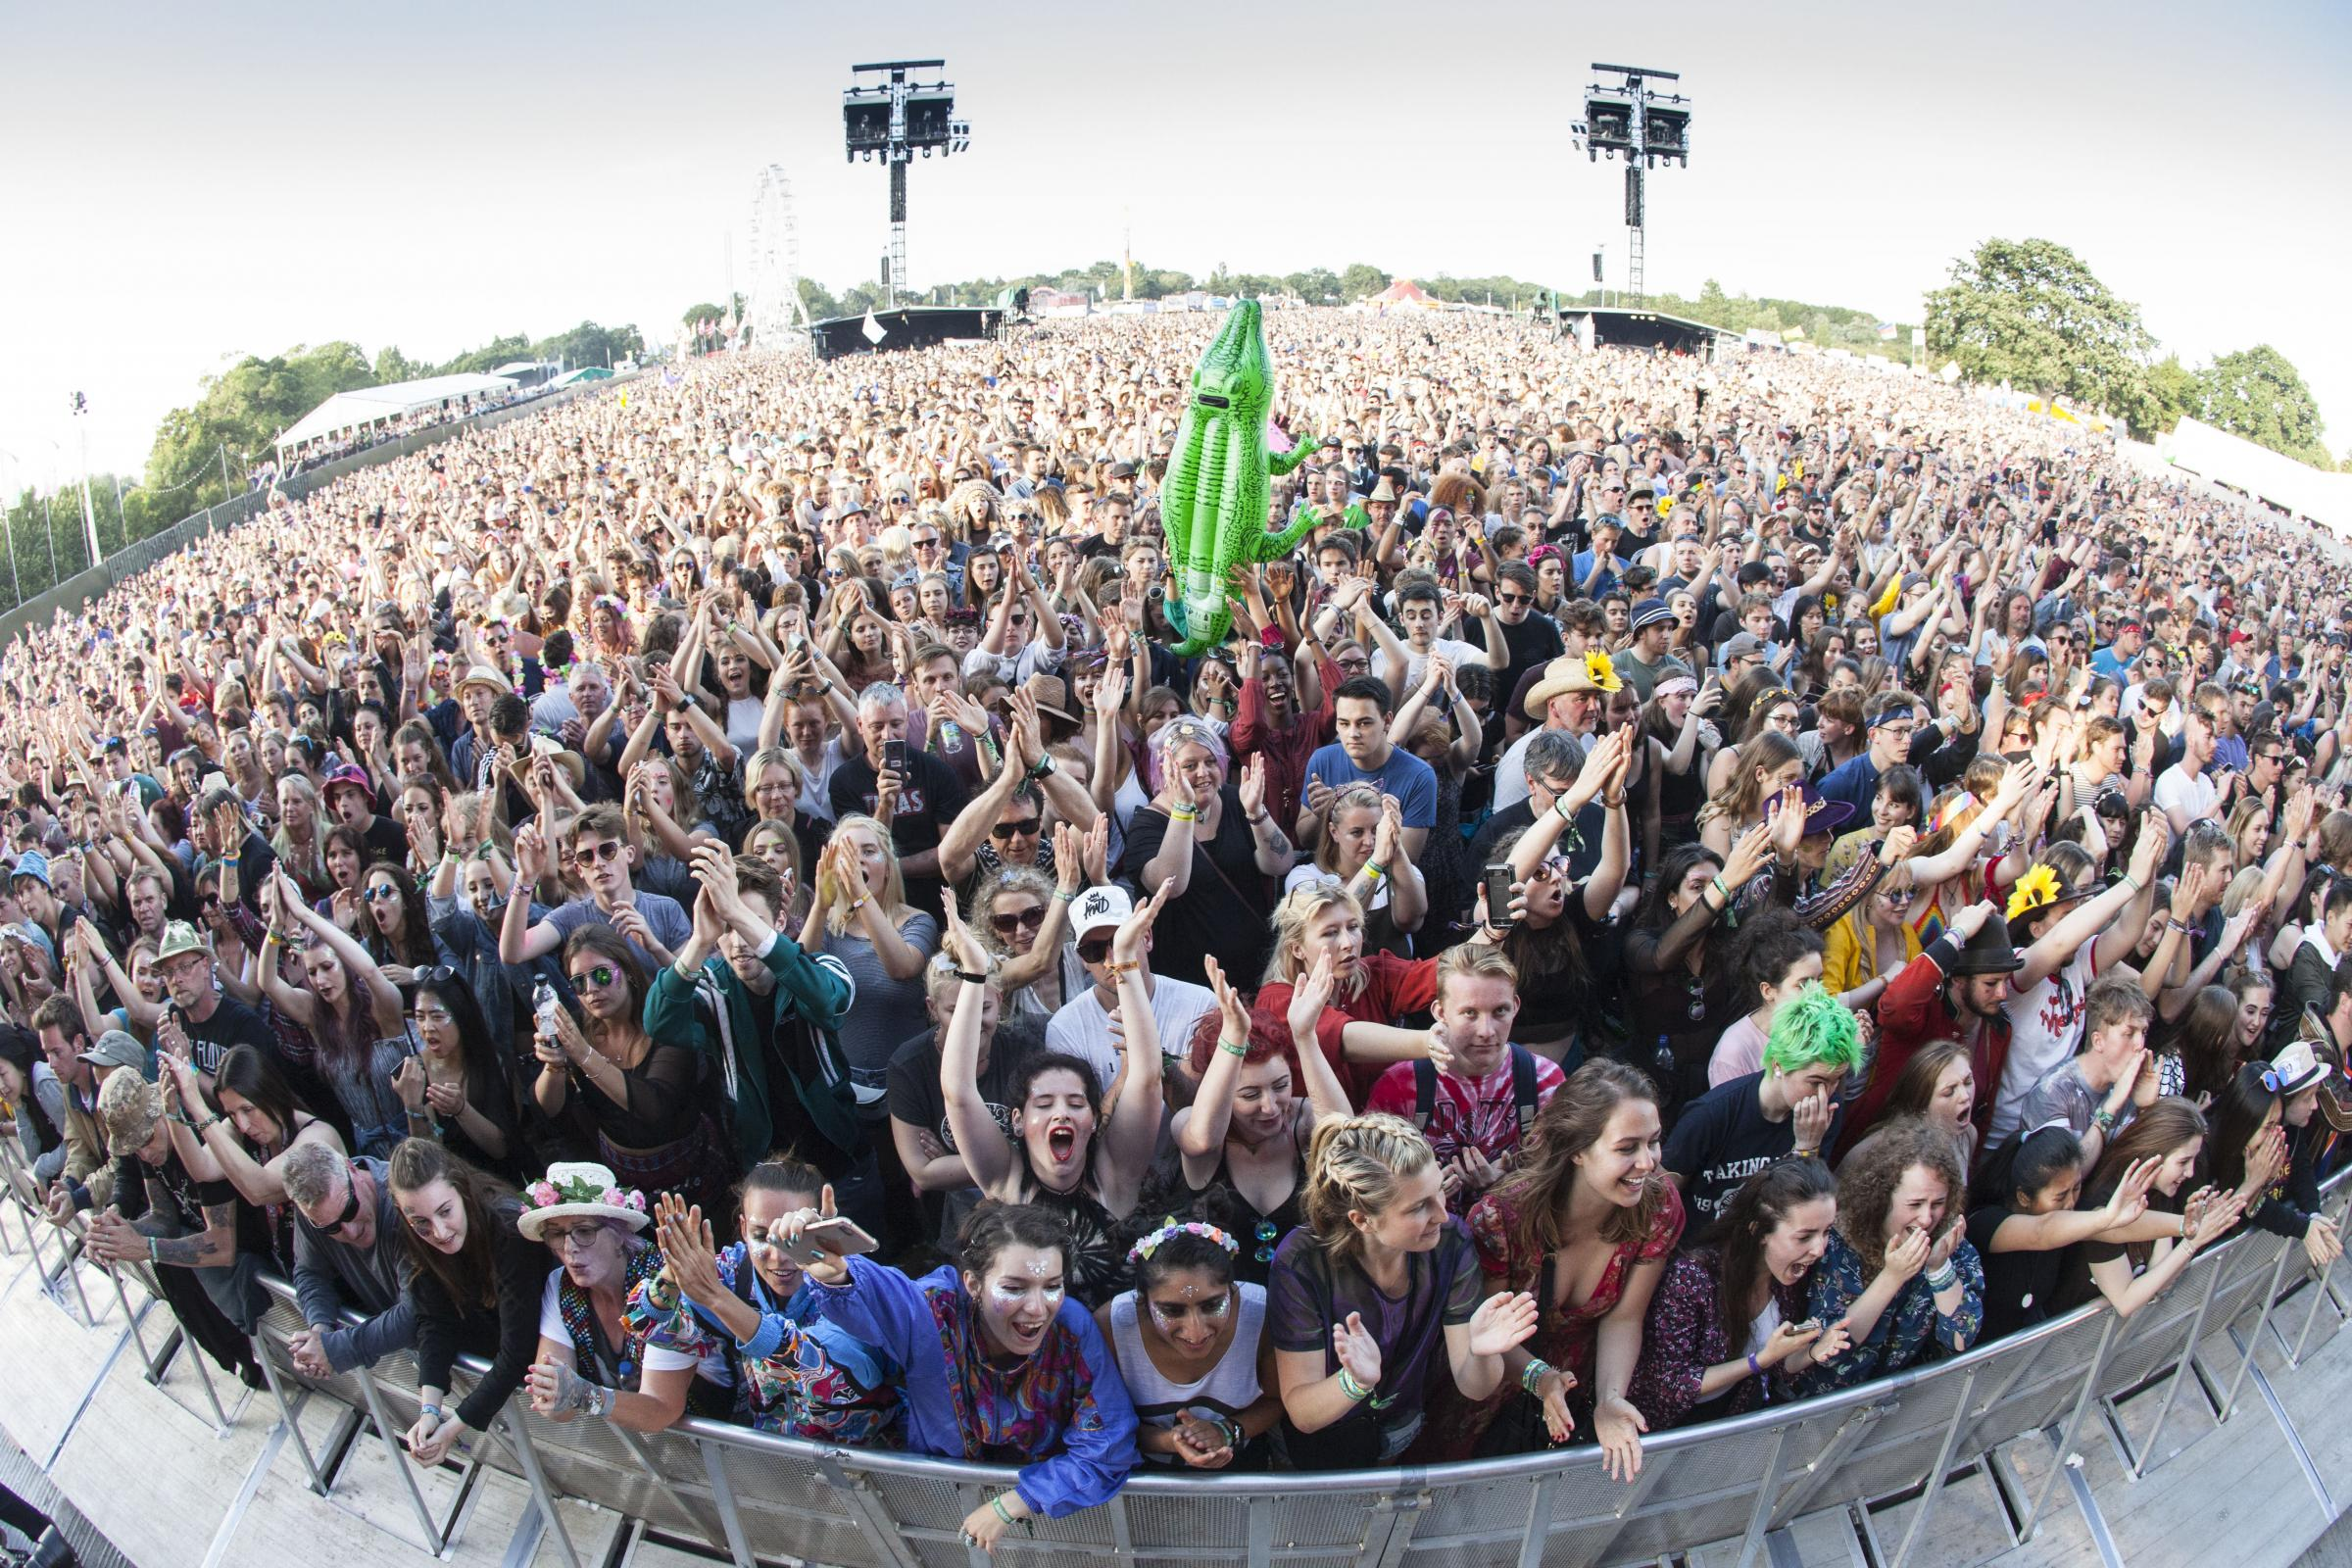 Photo Stuart Martin - IOW Isle of Wight Festival 2017 - Crowd.